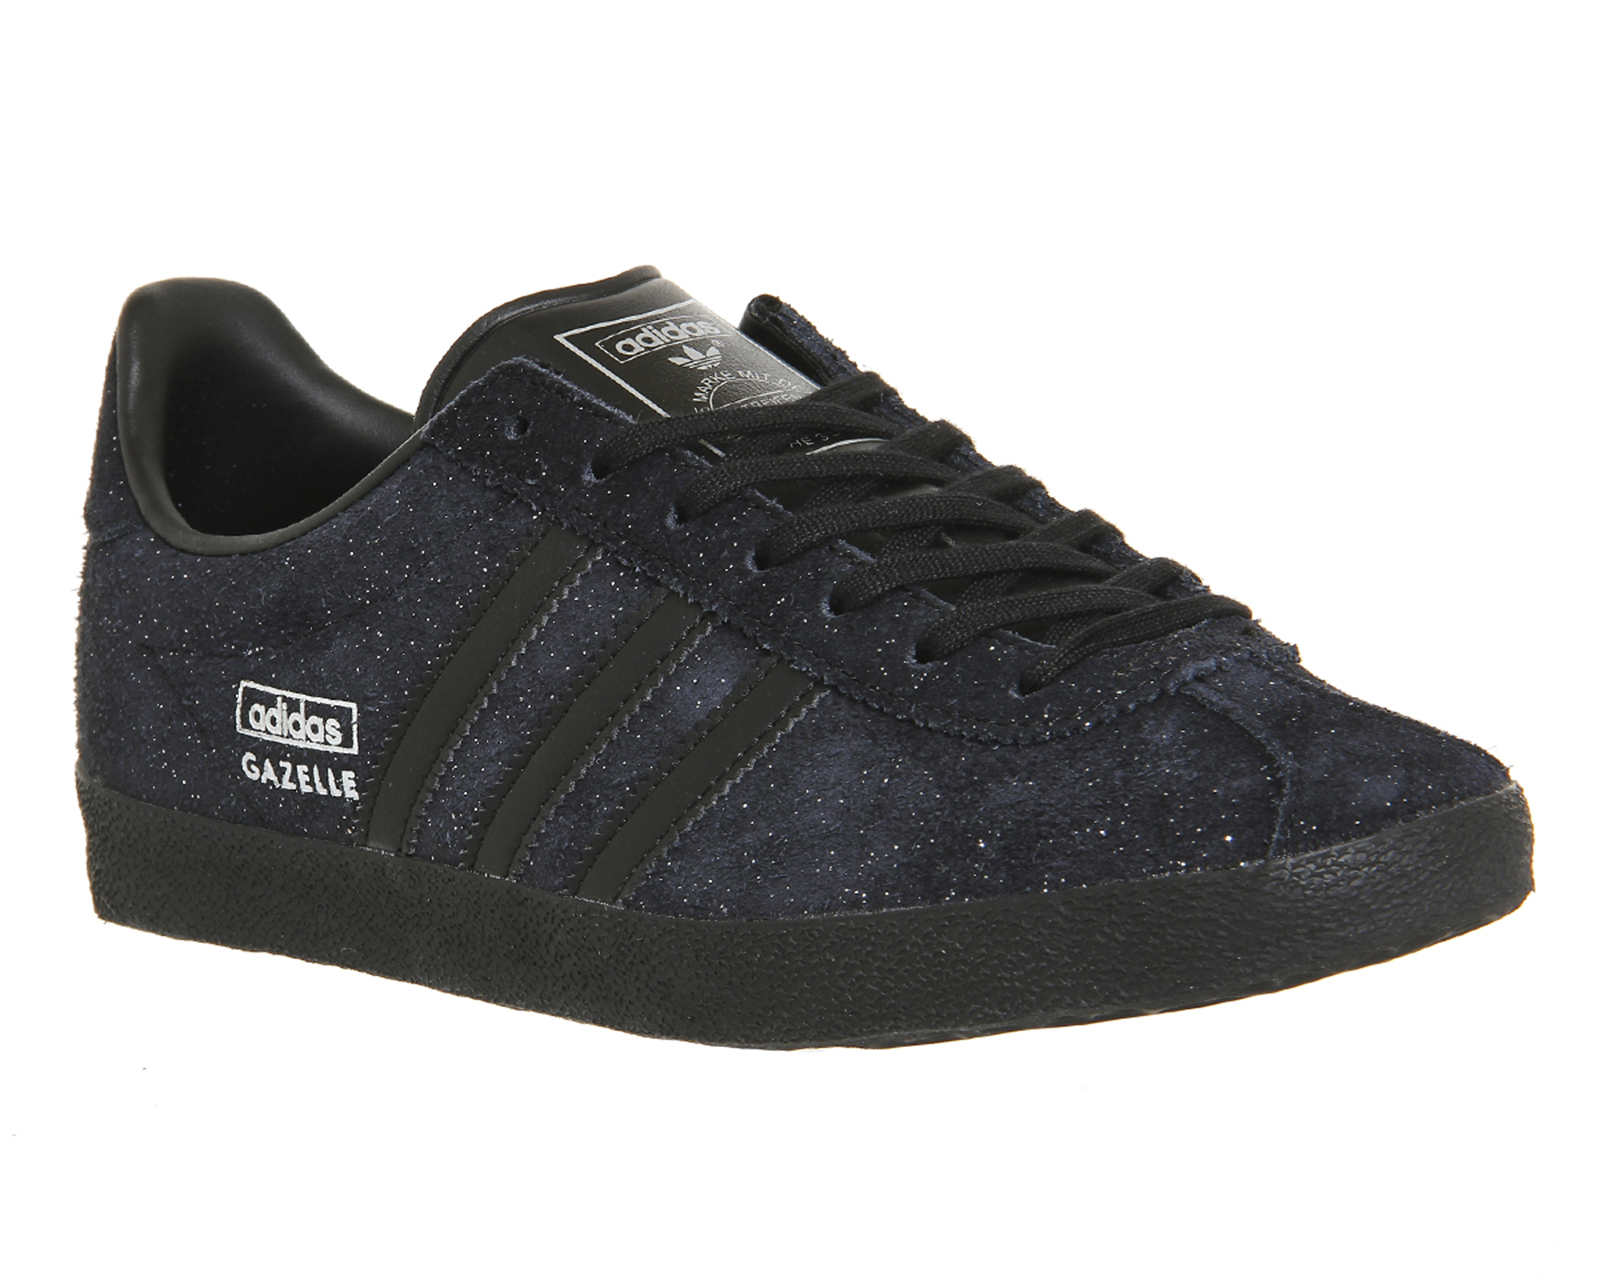 Adidas-Gazelle-Og-CORE-BLACK-SILVER-METALLIC-Trainers-